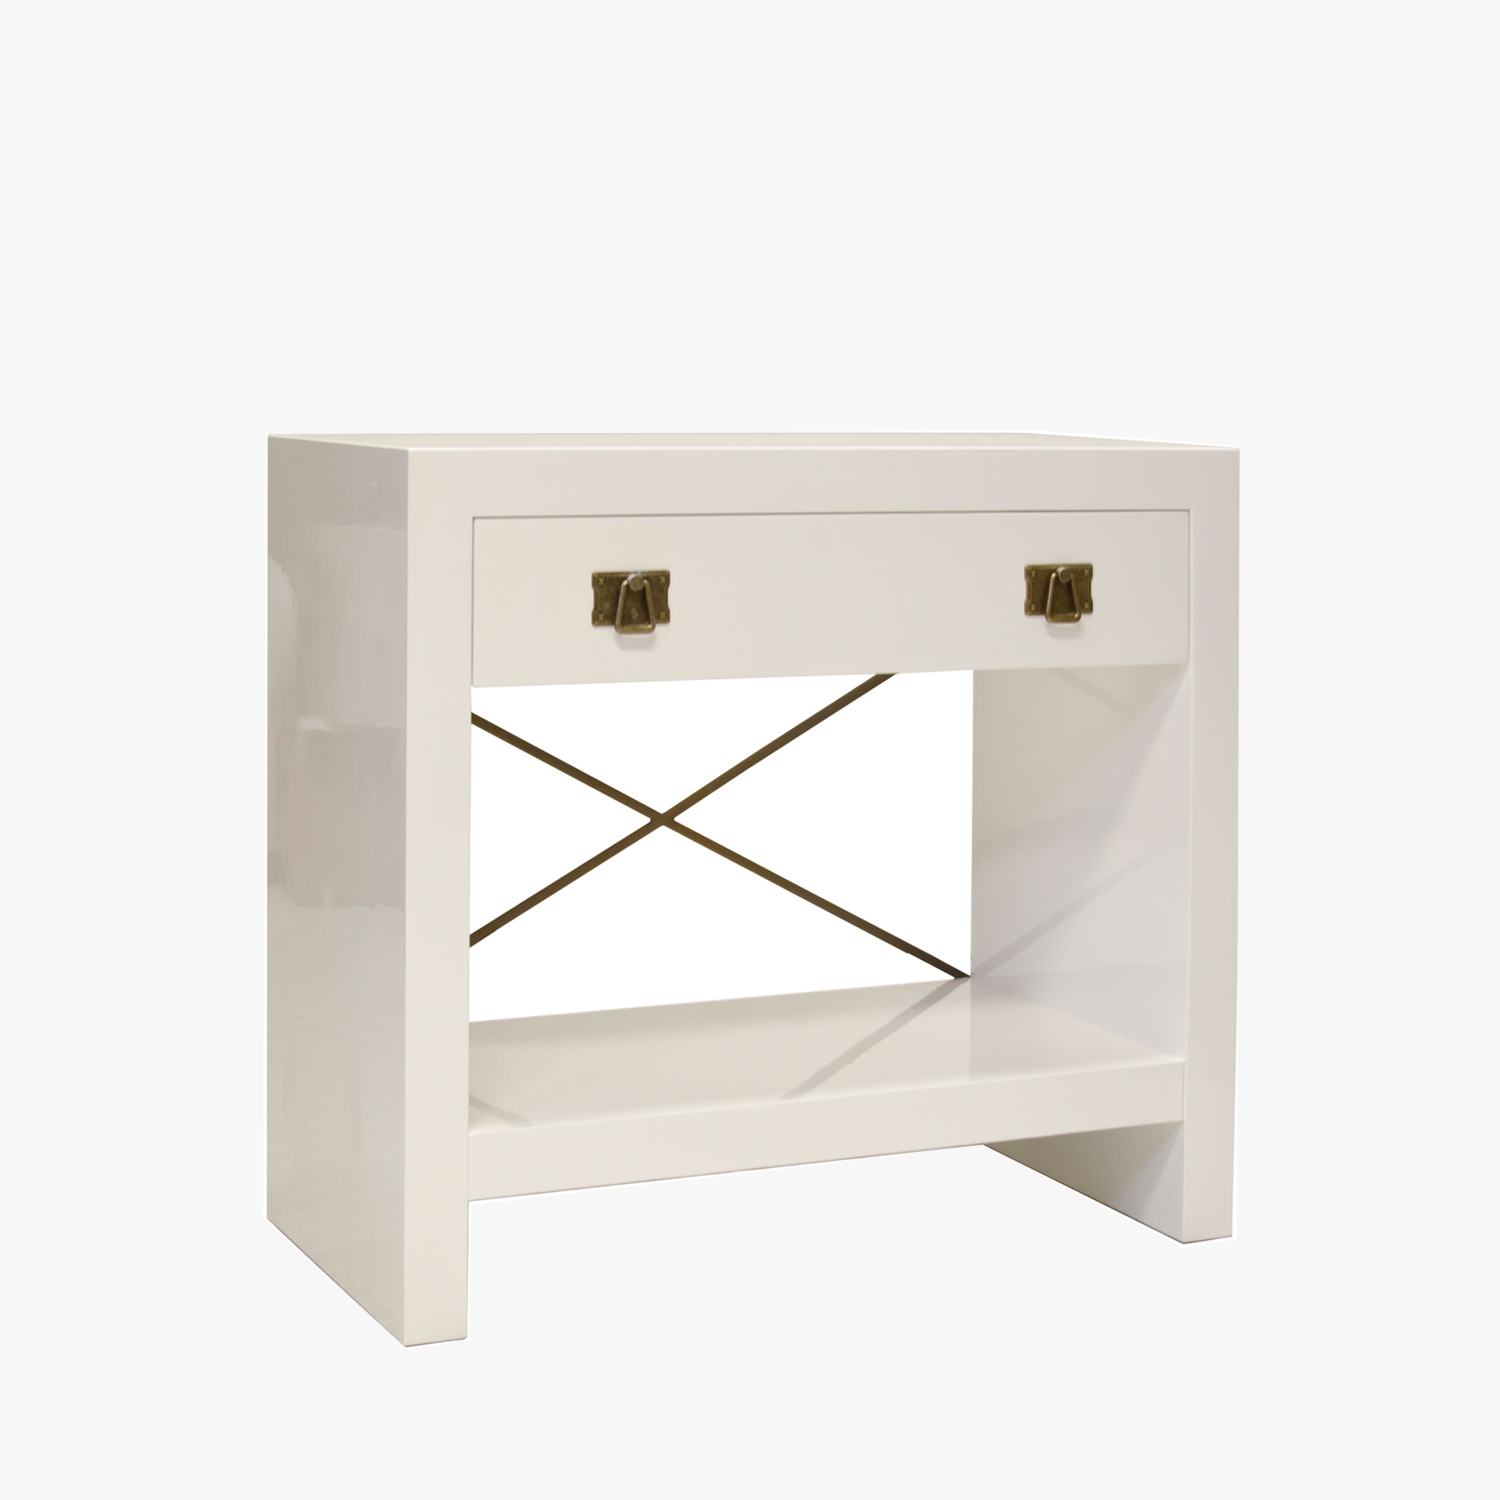 dane white lacquer side table accent furniture dear keaton pier one art cement kitchenette navy tablecloth decorative chairs retro bedroom tall end tables target small outdoor